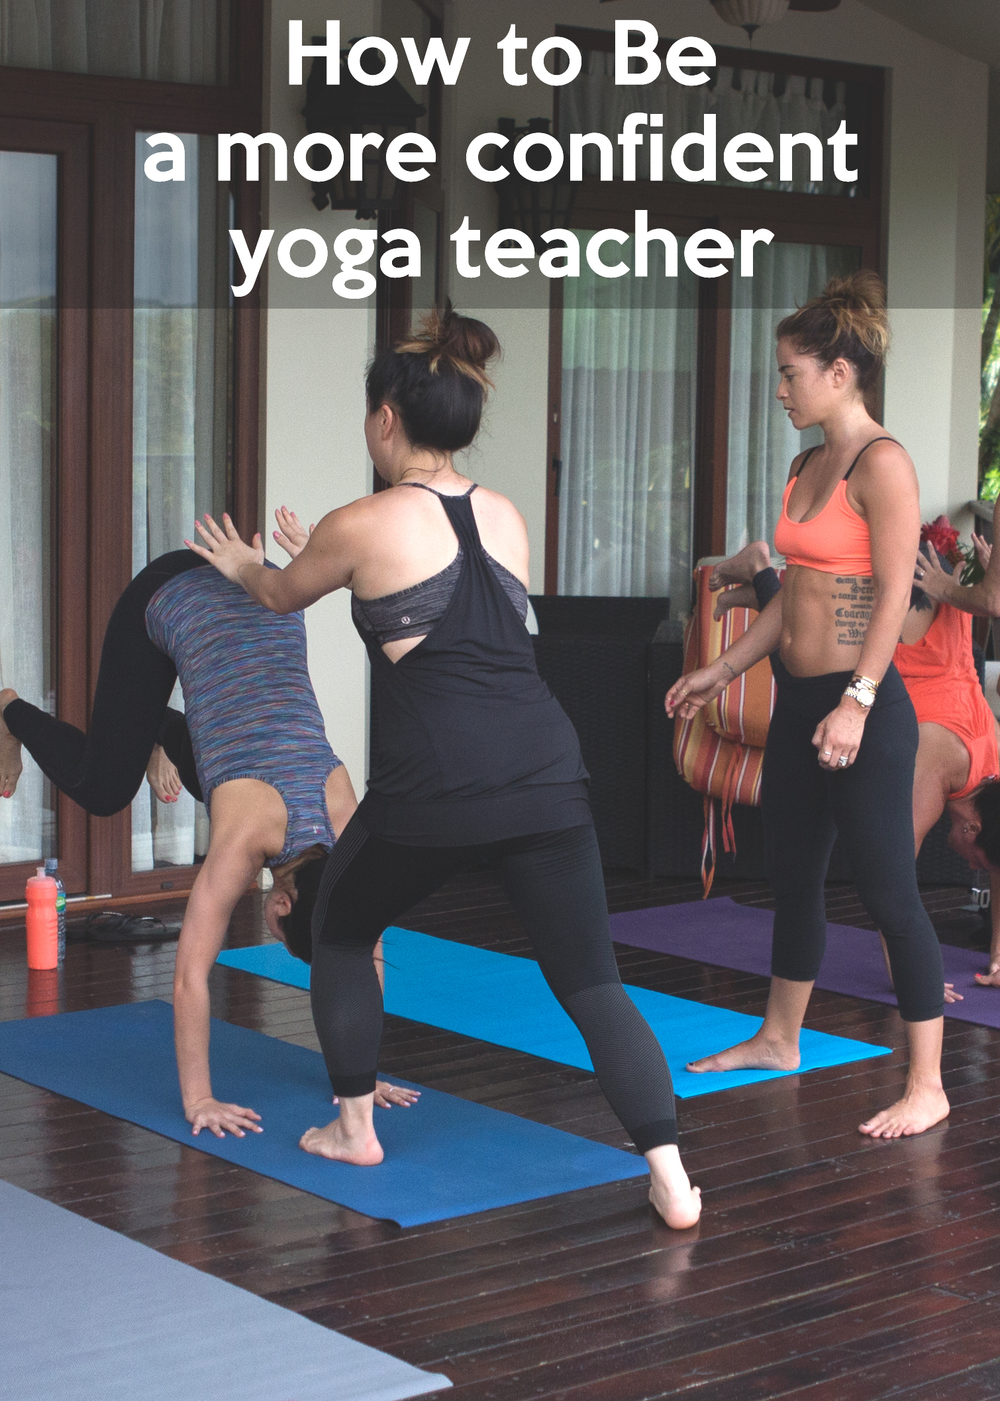 Pin now, read later - how to be a more confident yoga teacher Wearing: lululemon pants, onzie bra.